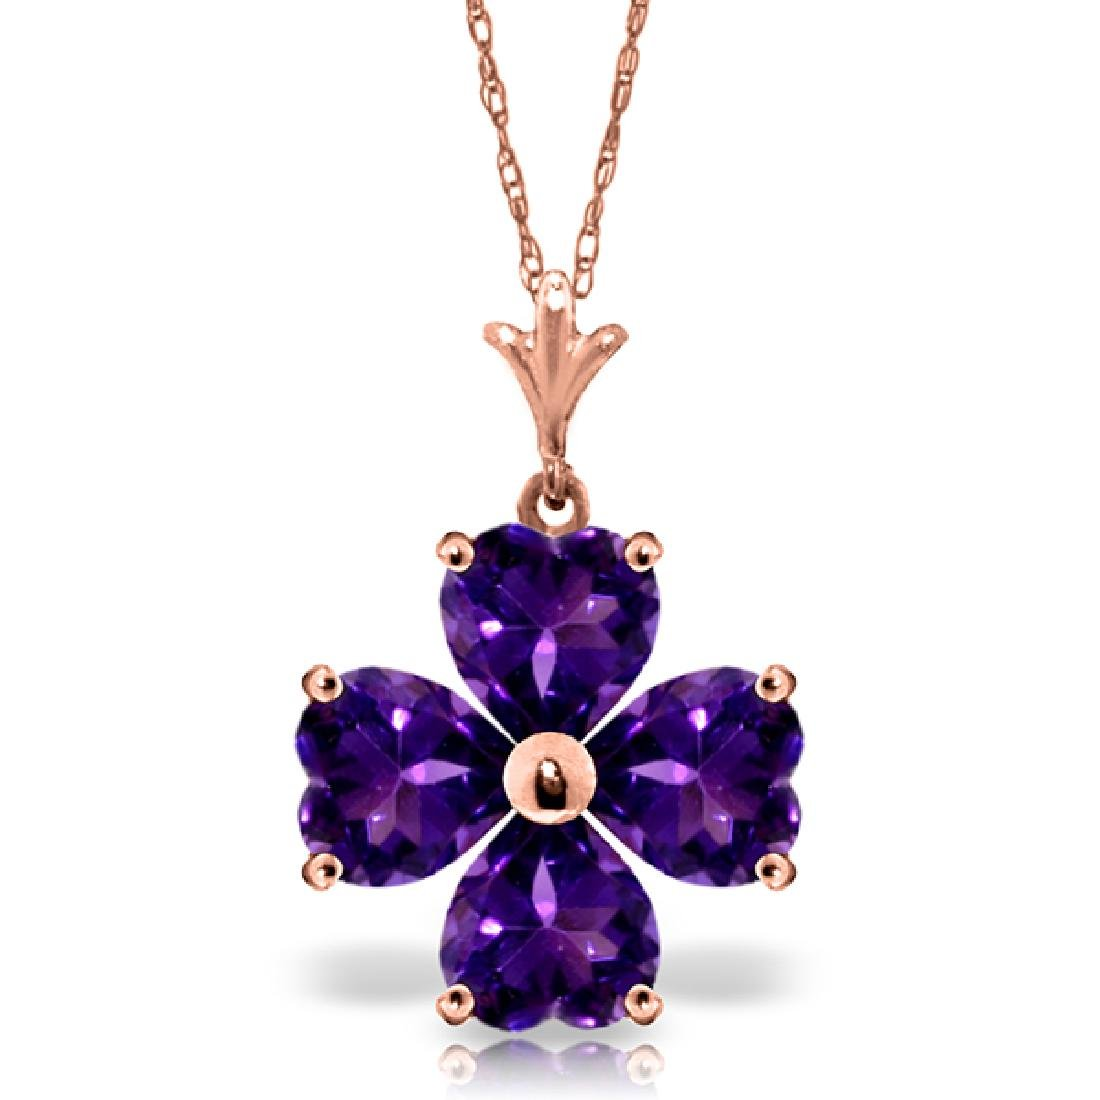 Genuine 3.8 ctw Amethyst Necklace Jewelry 14KT Rose